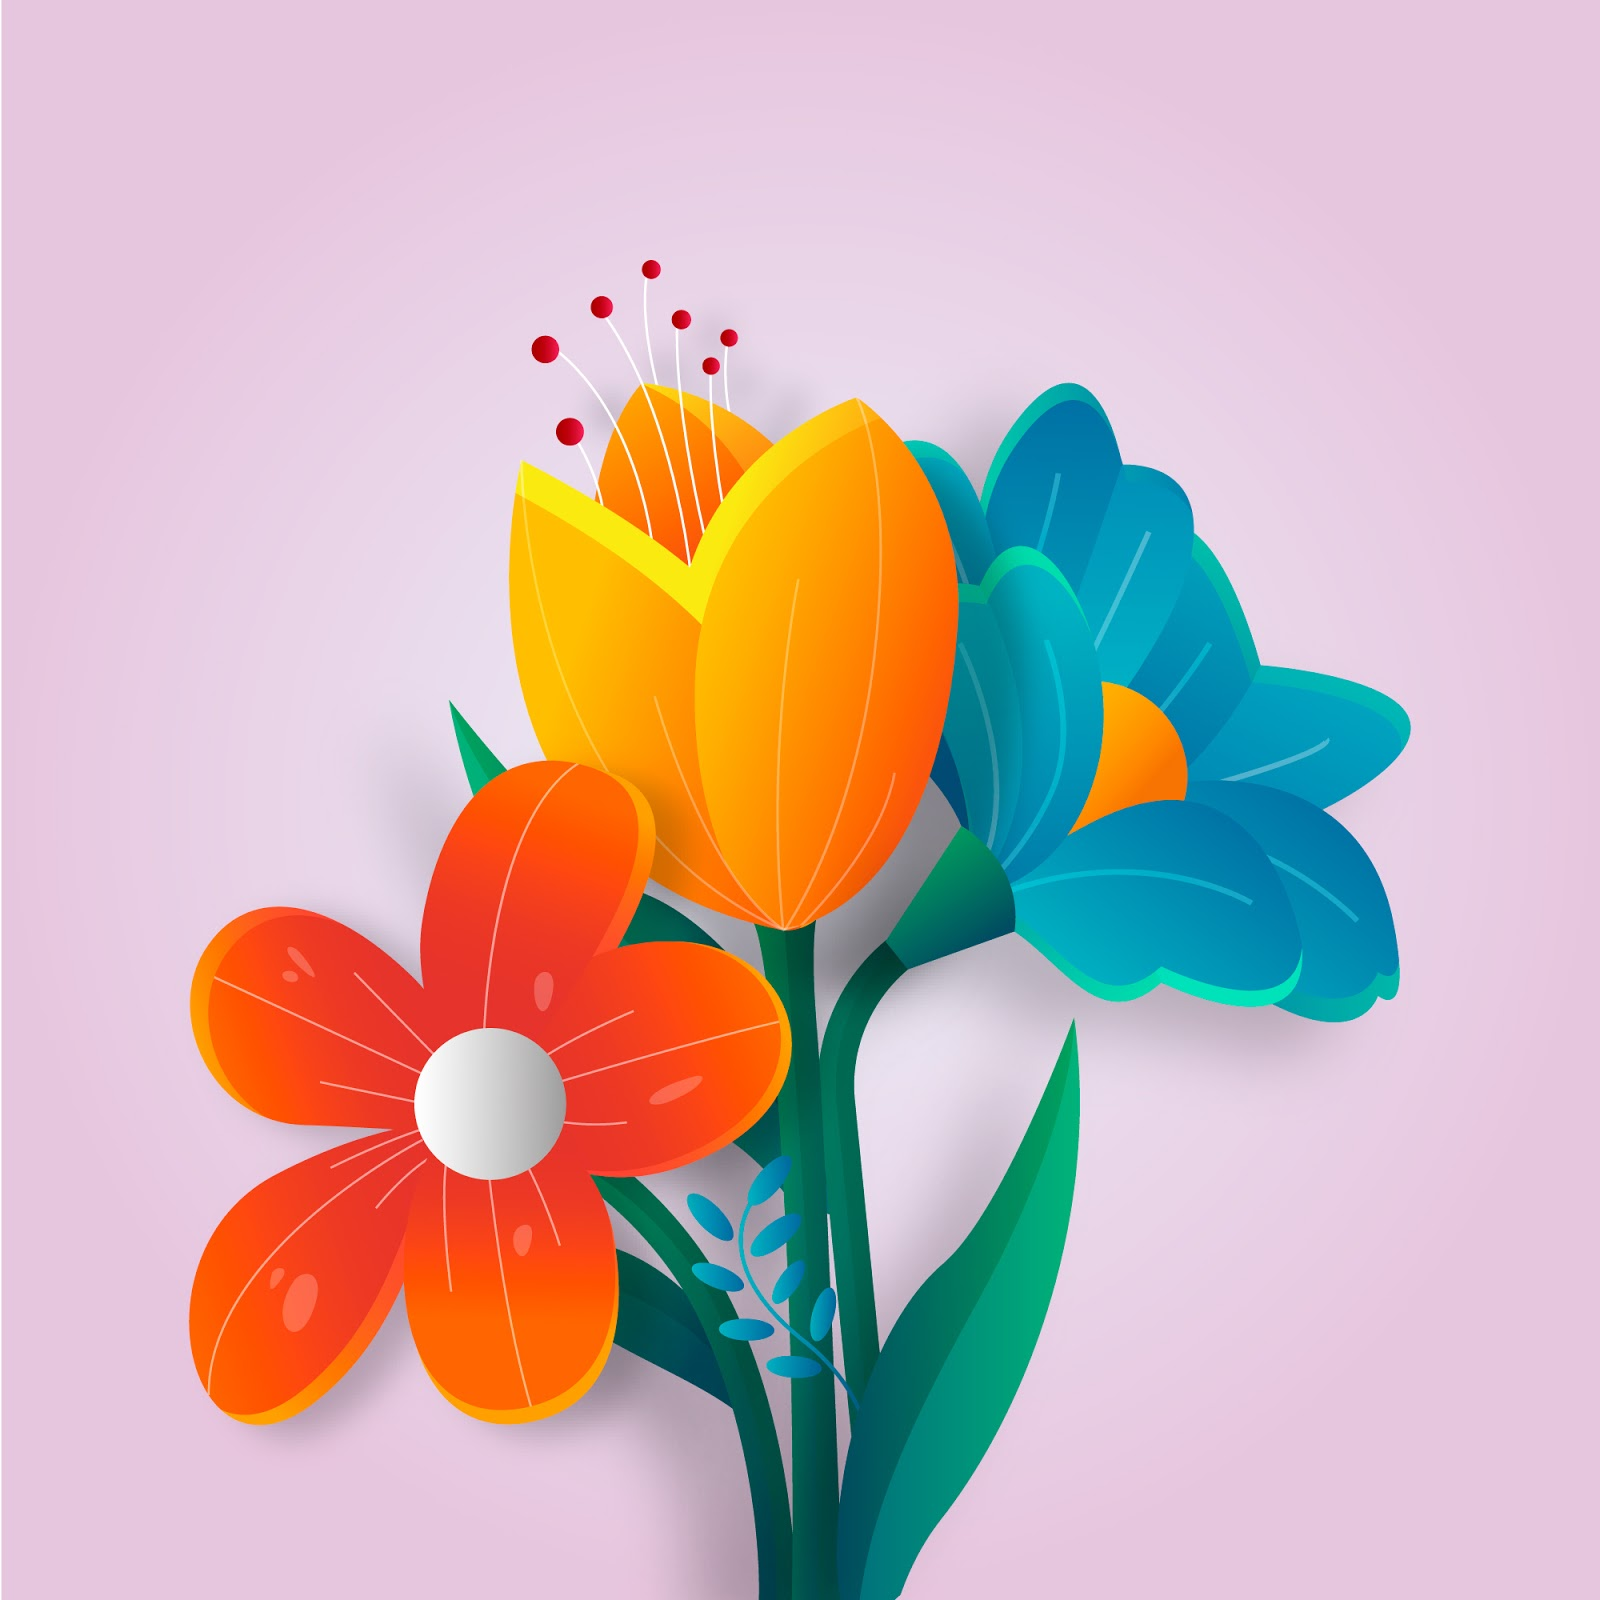 Gradient Spring Paper Free Download Vector CDR, AI, EPS and PNG Formats